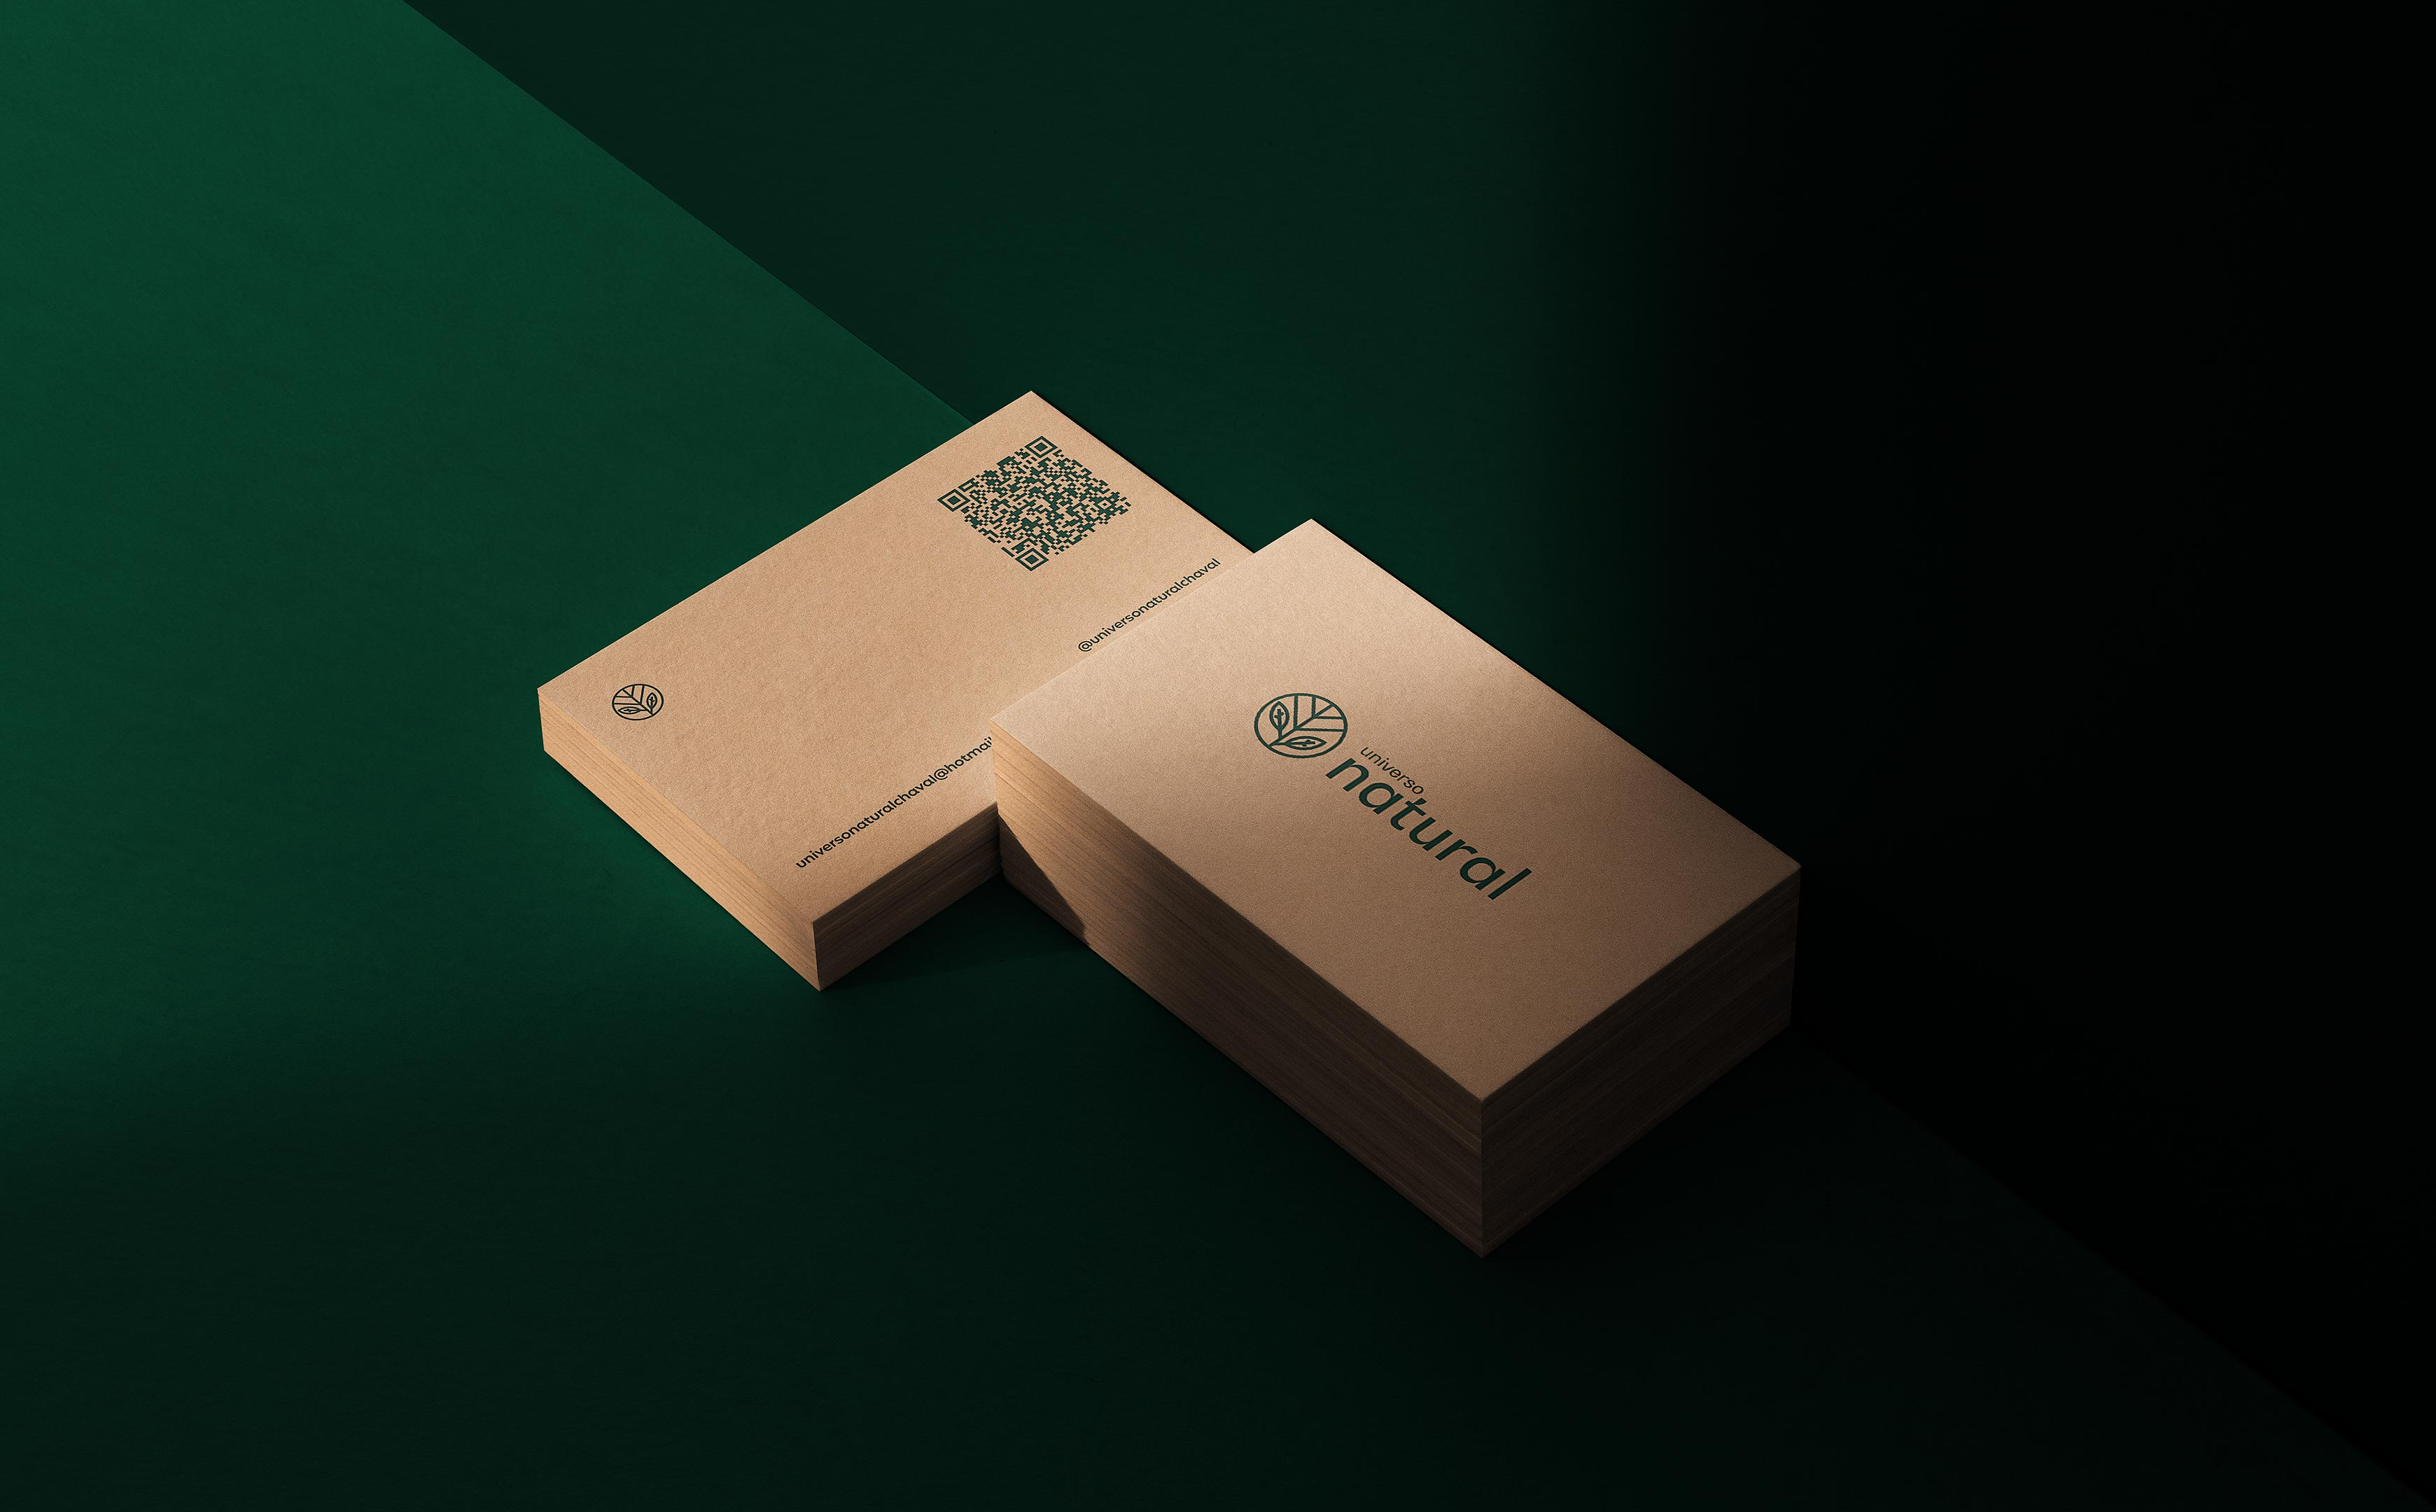 Visual Identity and Packaging Design for Universo Natural